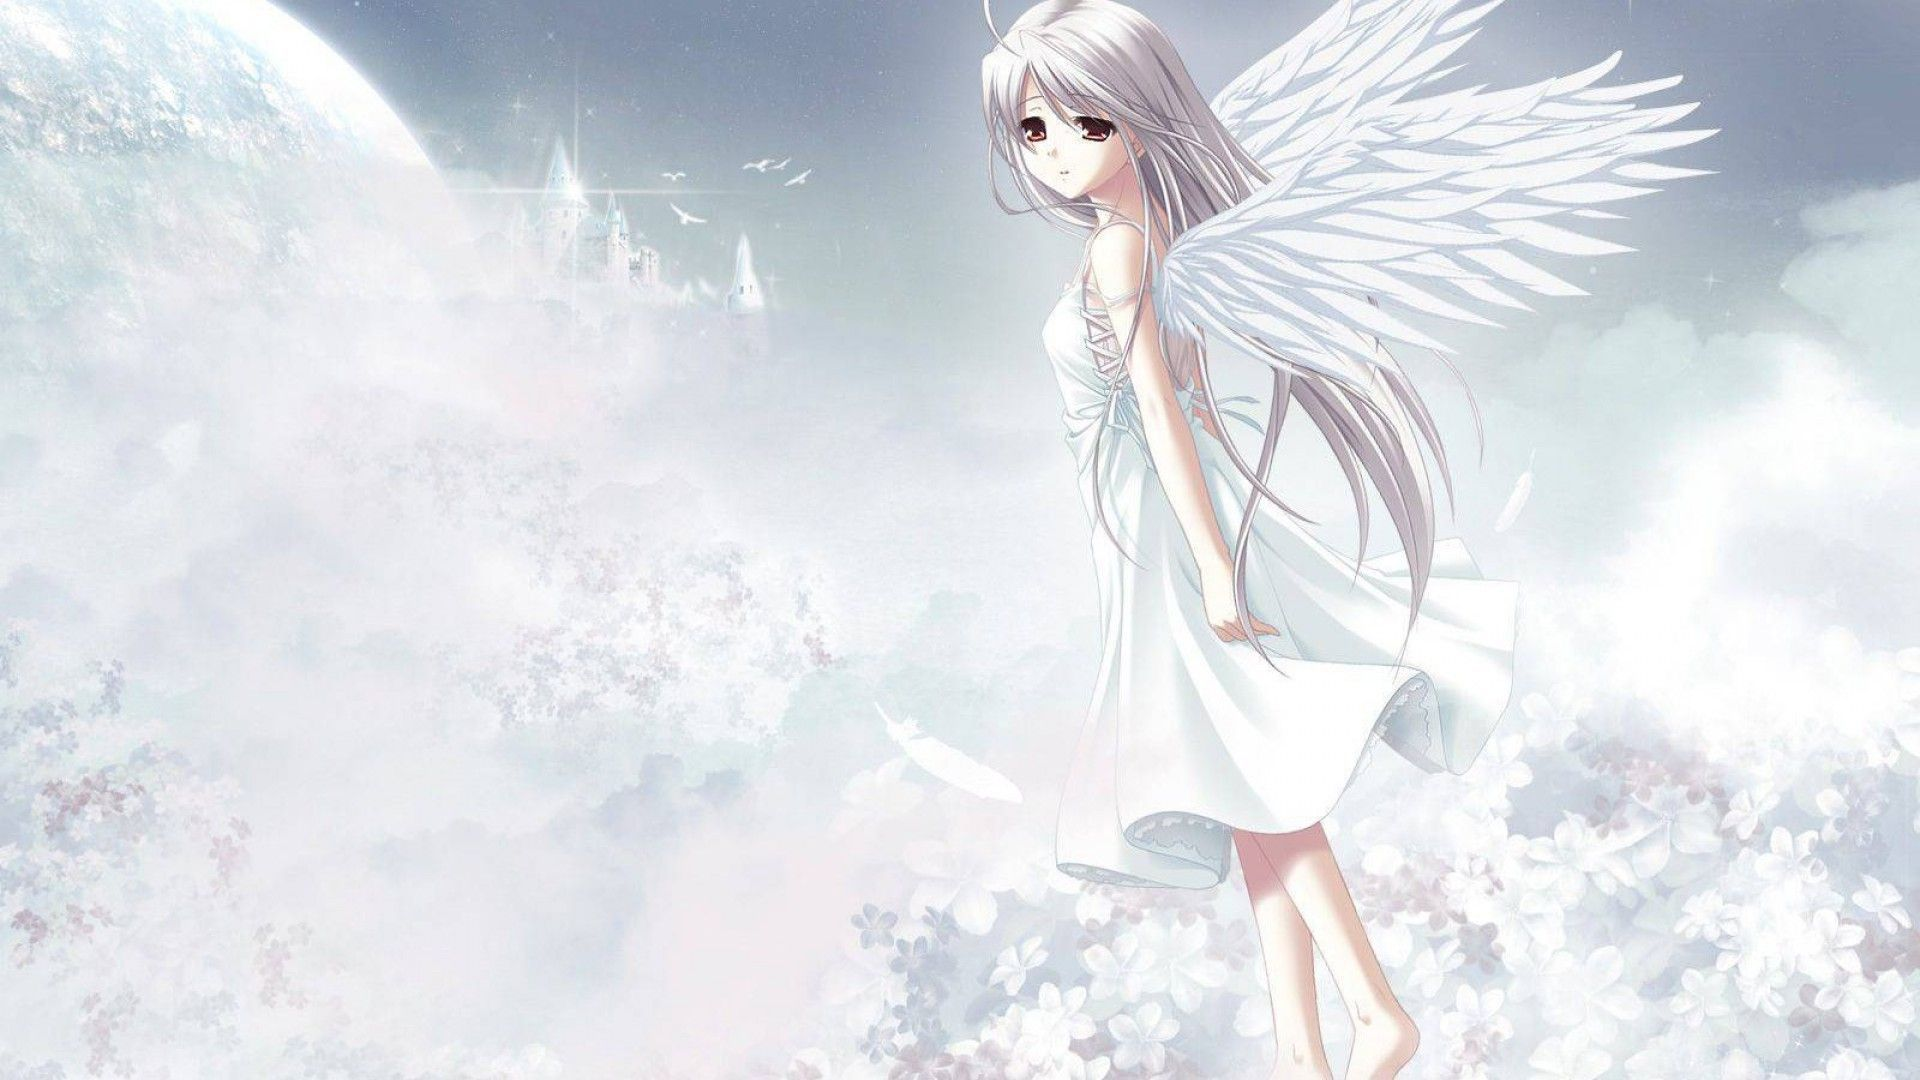 Angel Anime Girl Wallpapers - Wallpaper Cave